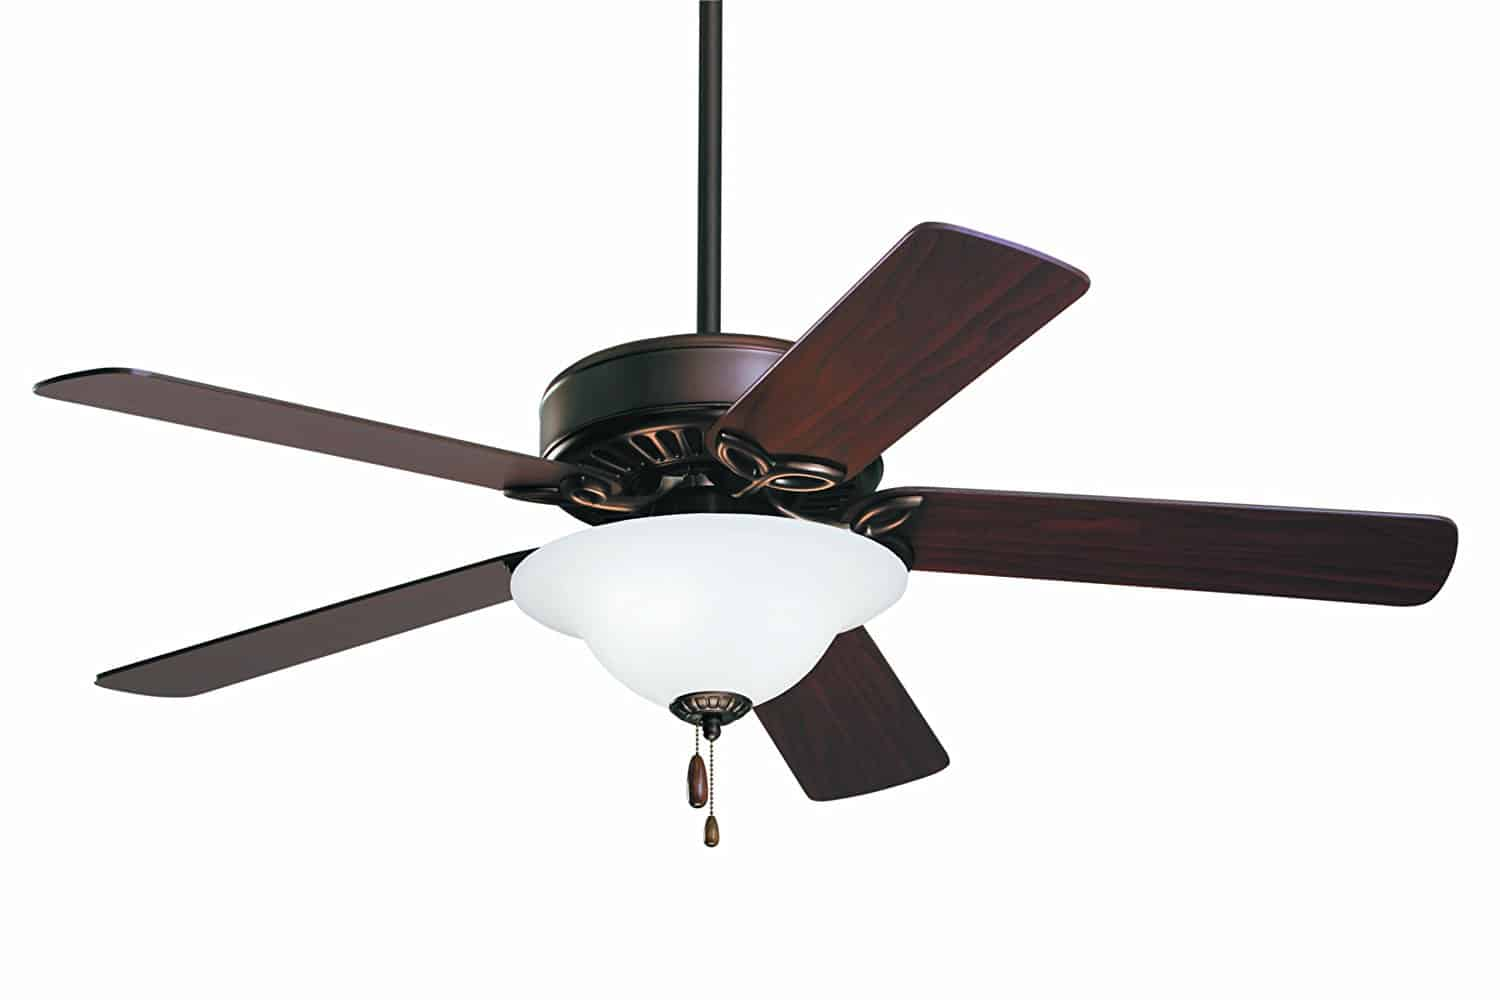 Emerson Pro Series 50 inch Ceiling Fan with Light